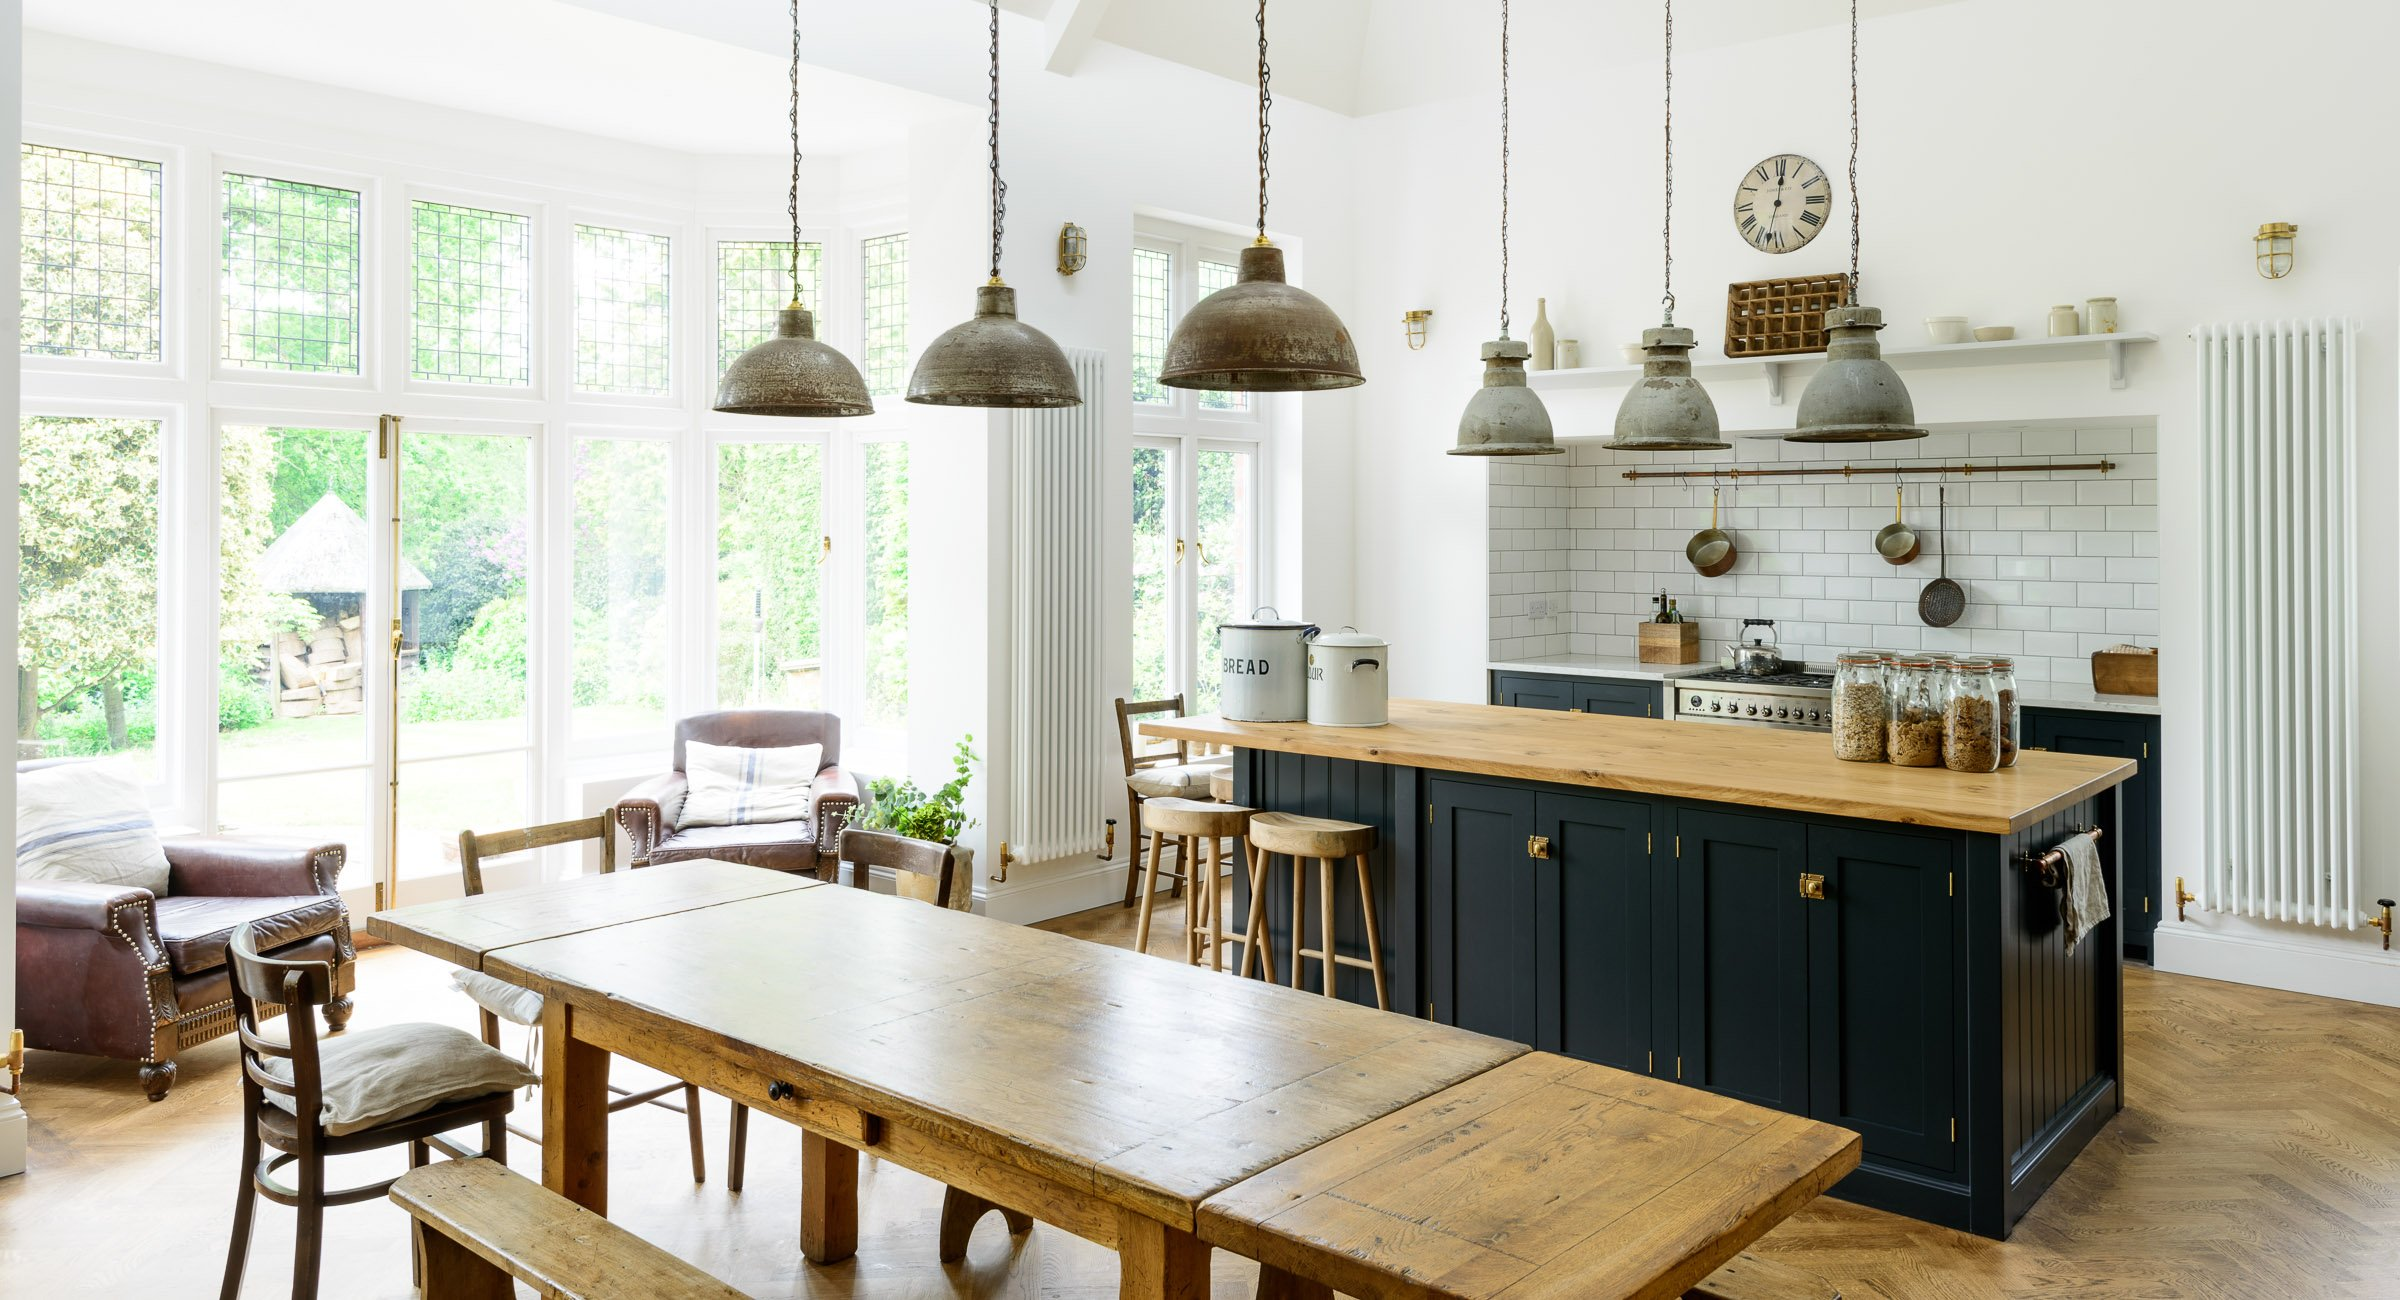 10 Modern Rustic Decor Ideas - These Modern Rustic Rooms ... on Rustic Traditional Decor  id=45982